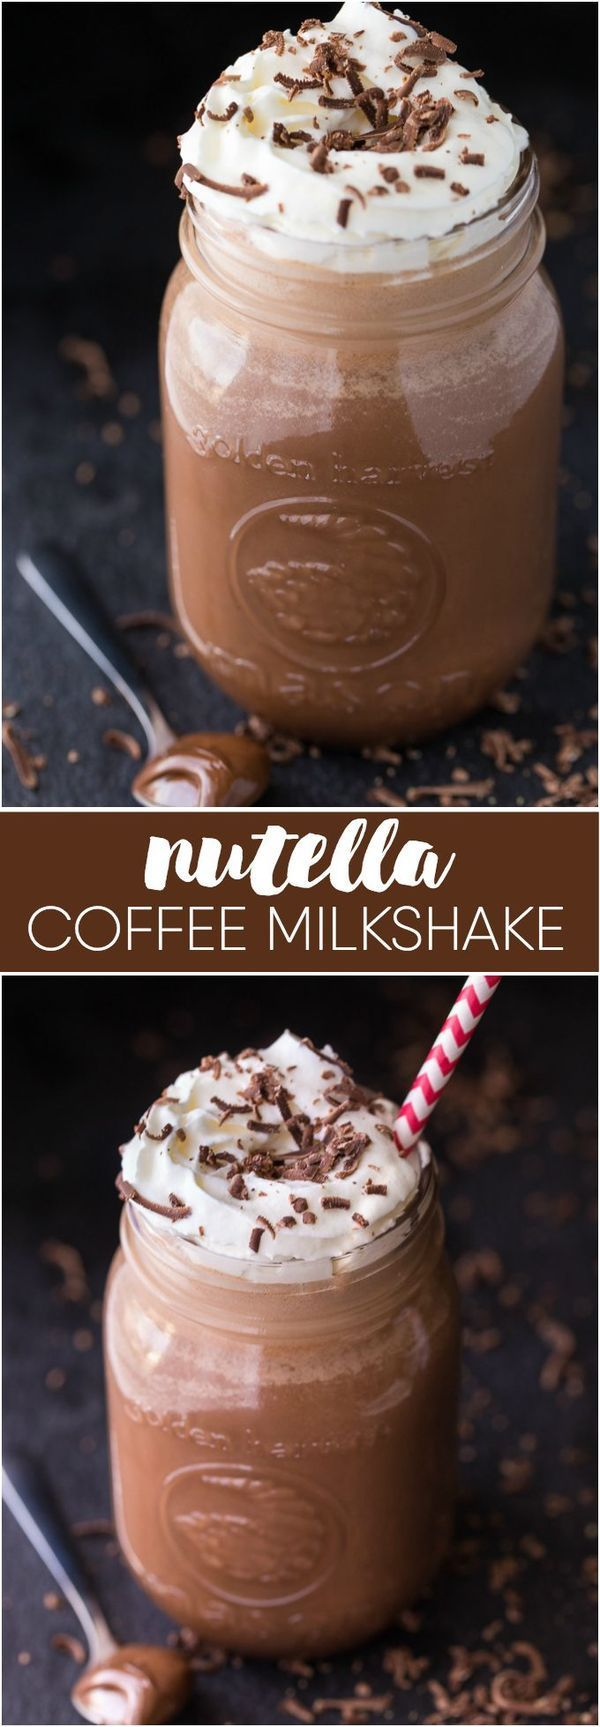 ~Nutella Coffee Milkshake - Perfectly sweet, chocolatey with a hint of nuttiness! A cold and refreshing way to get your caffeine fix~